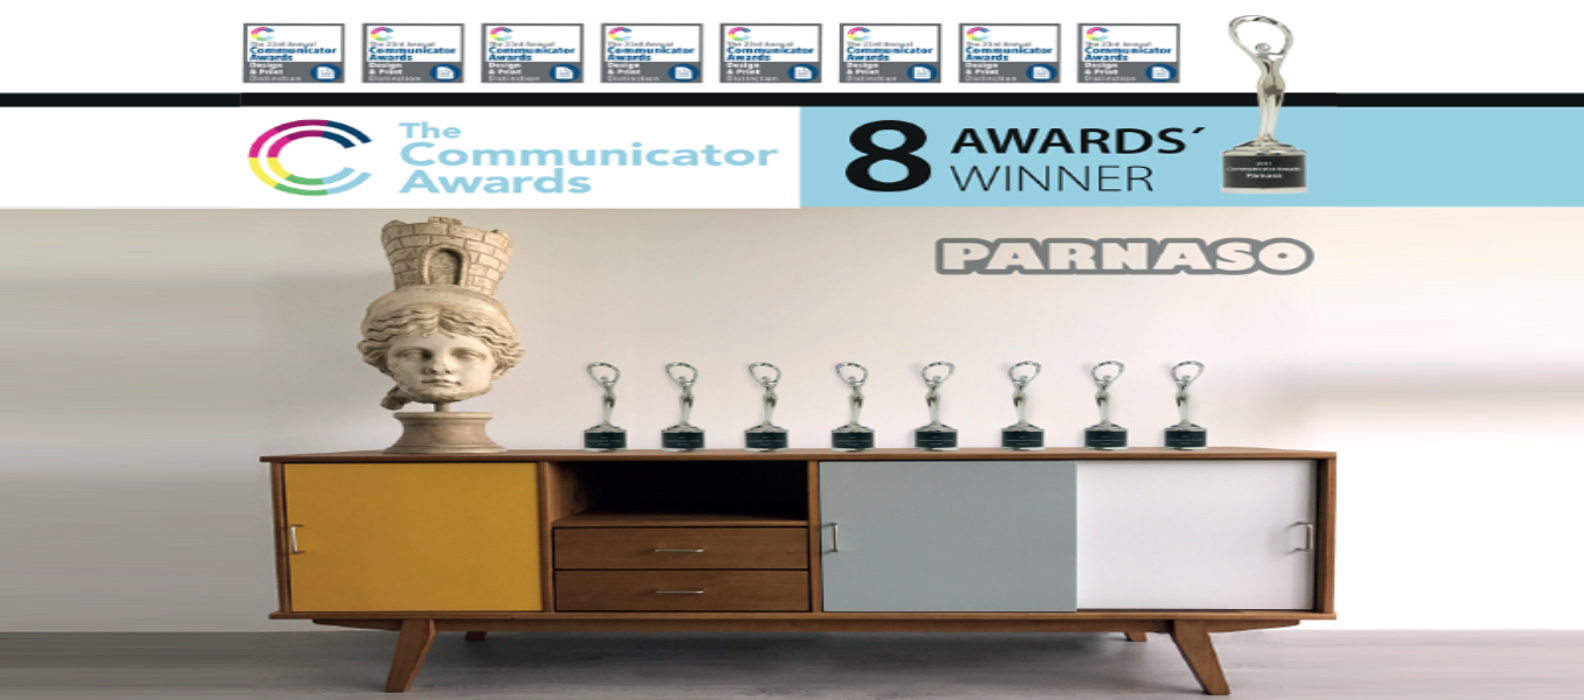 "Parnaso recibe 8 premios en los ""Communicator Awards"" - Parnaso"